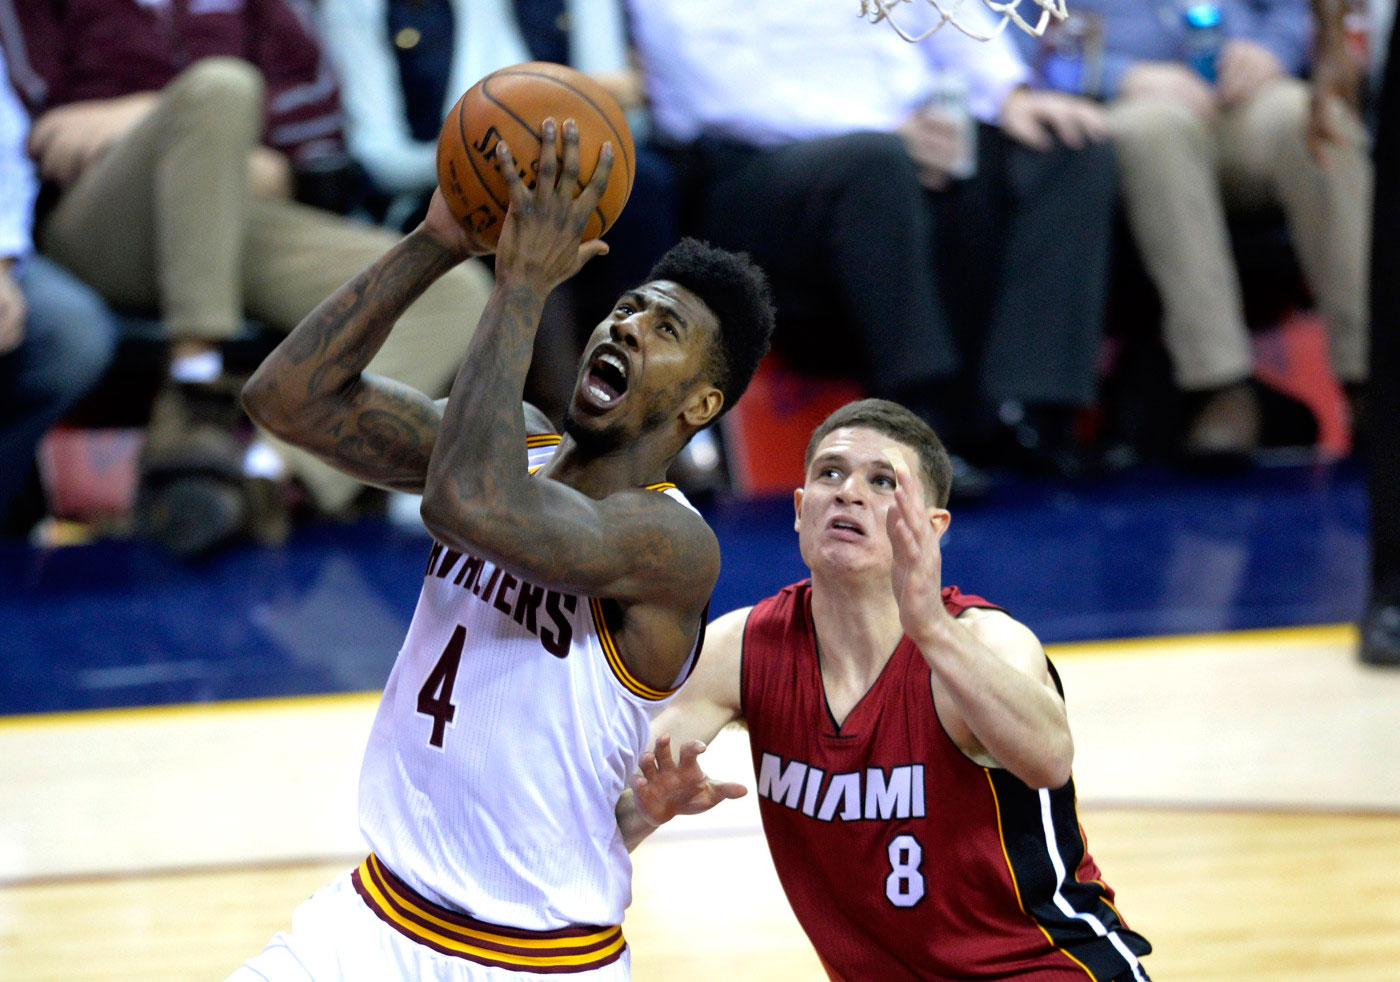 usp-nba_-miami-heat-at-cleveland-cavaliers-02